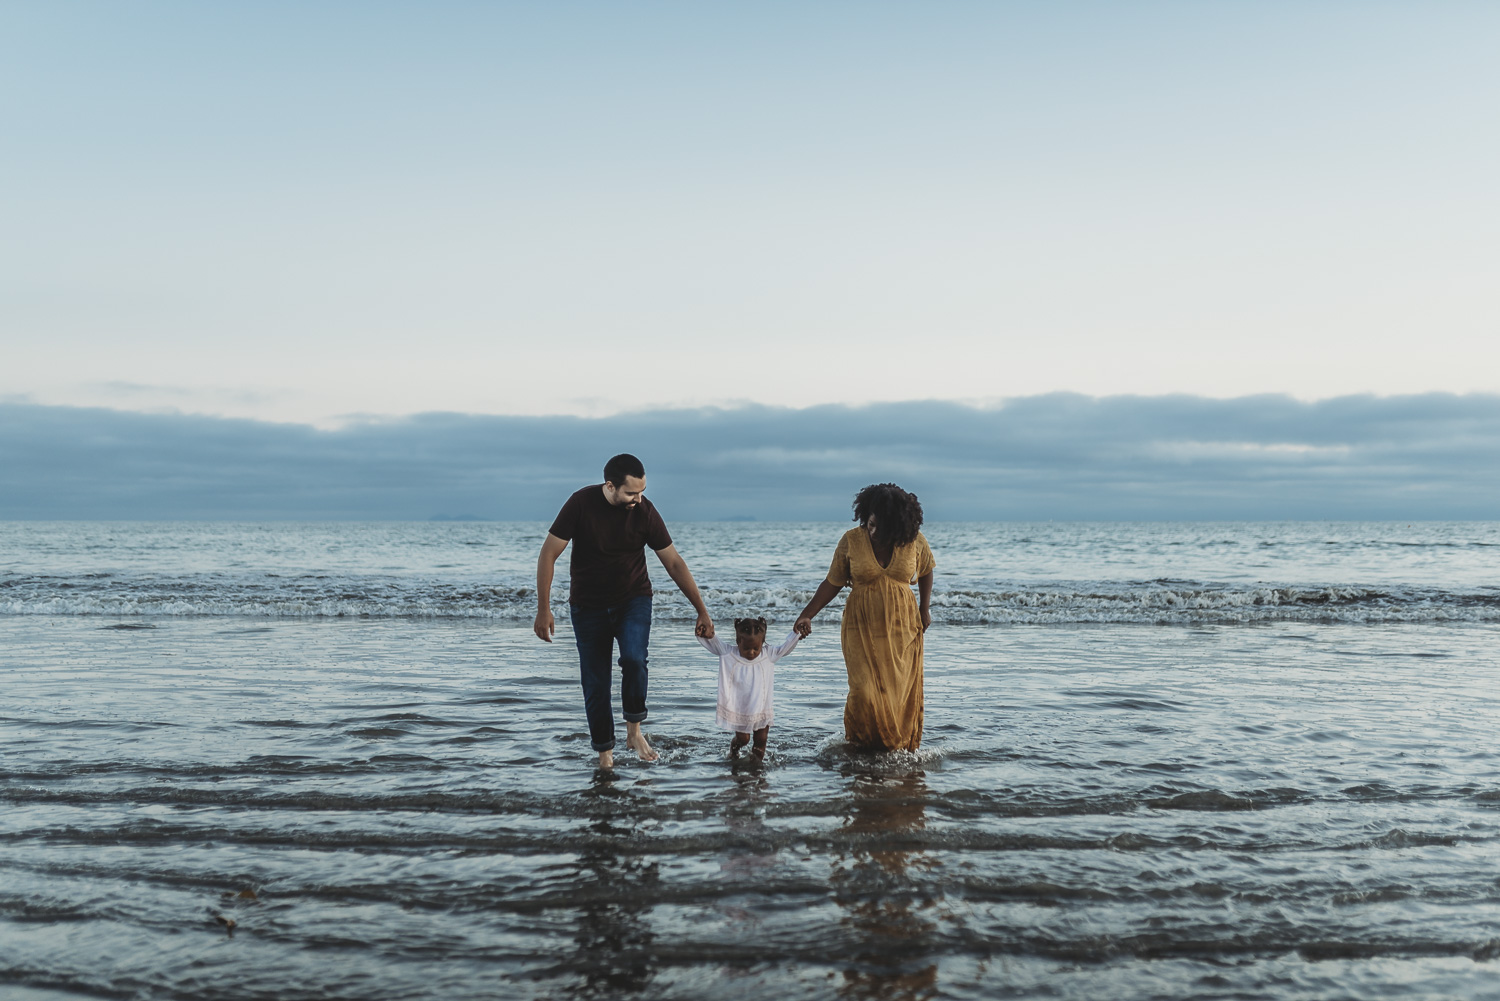 sandiego_family_photography_beach_lifestyle_newborn_maternity-150.jpg